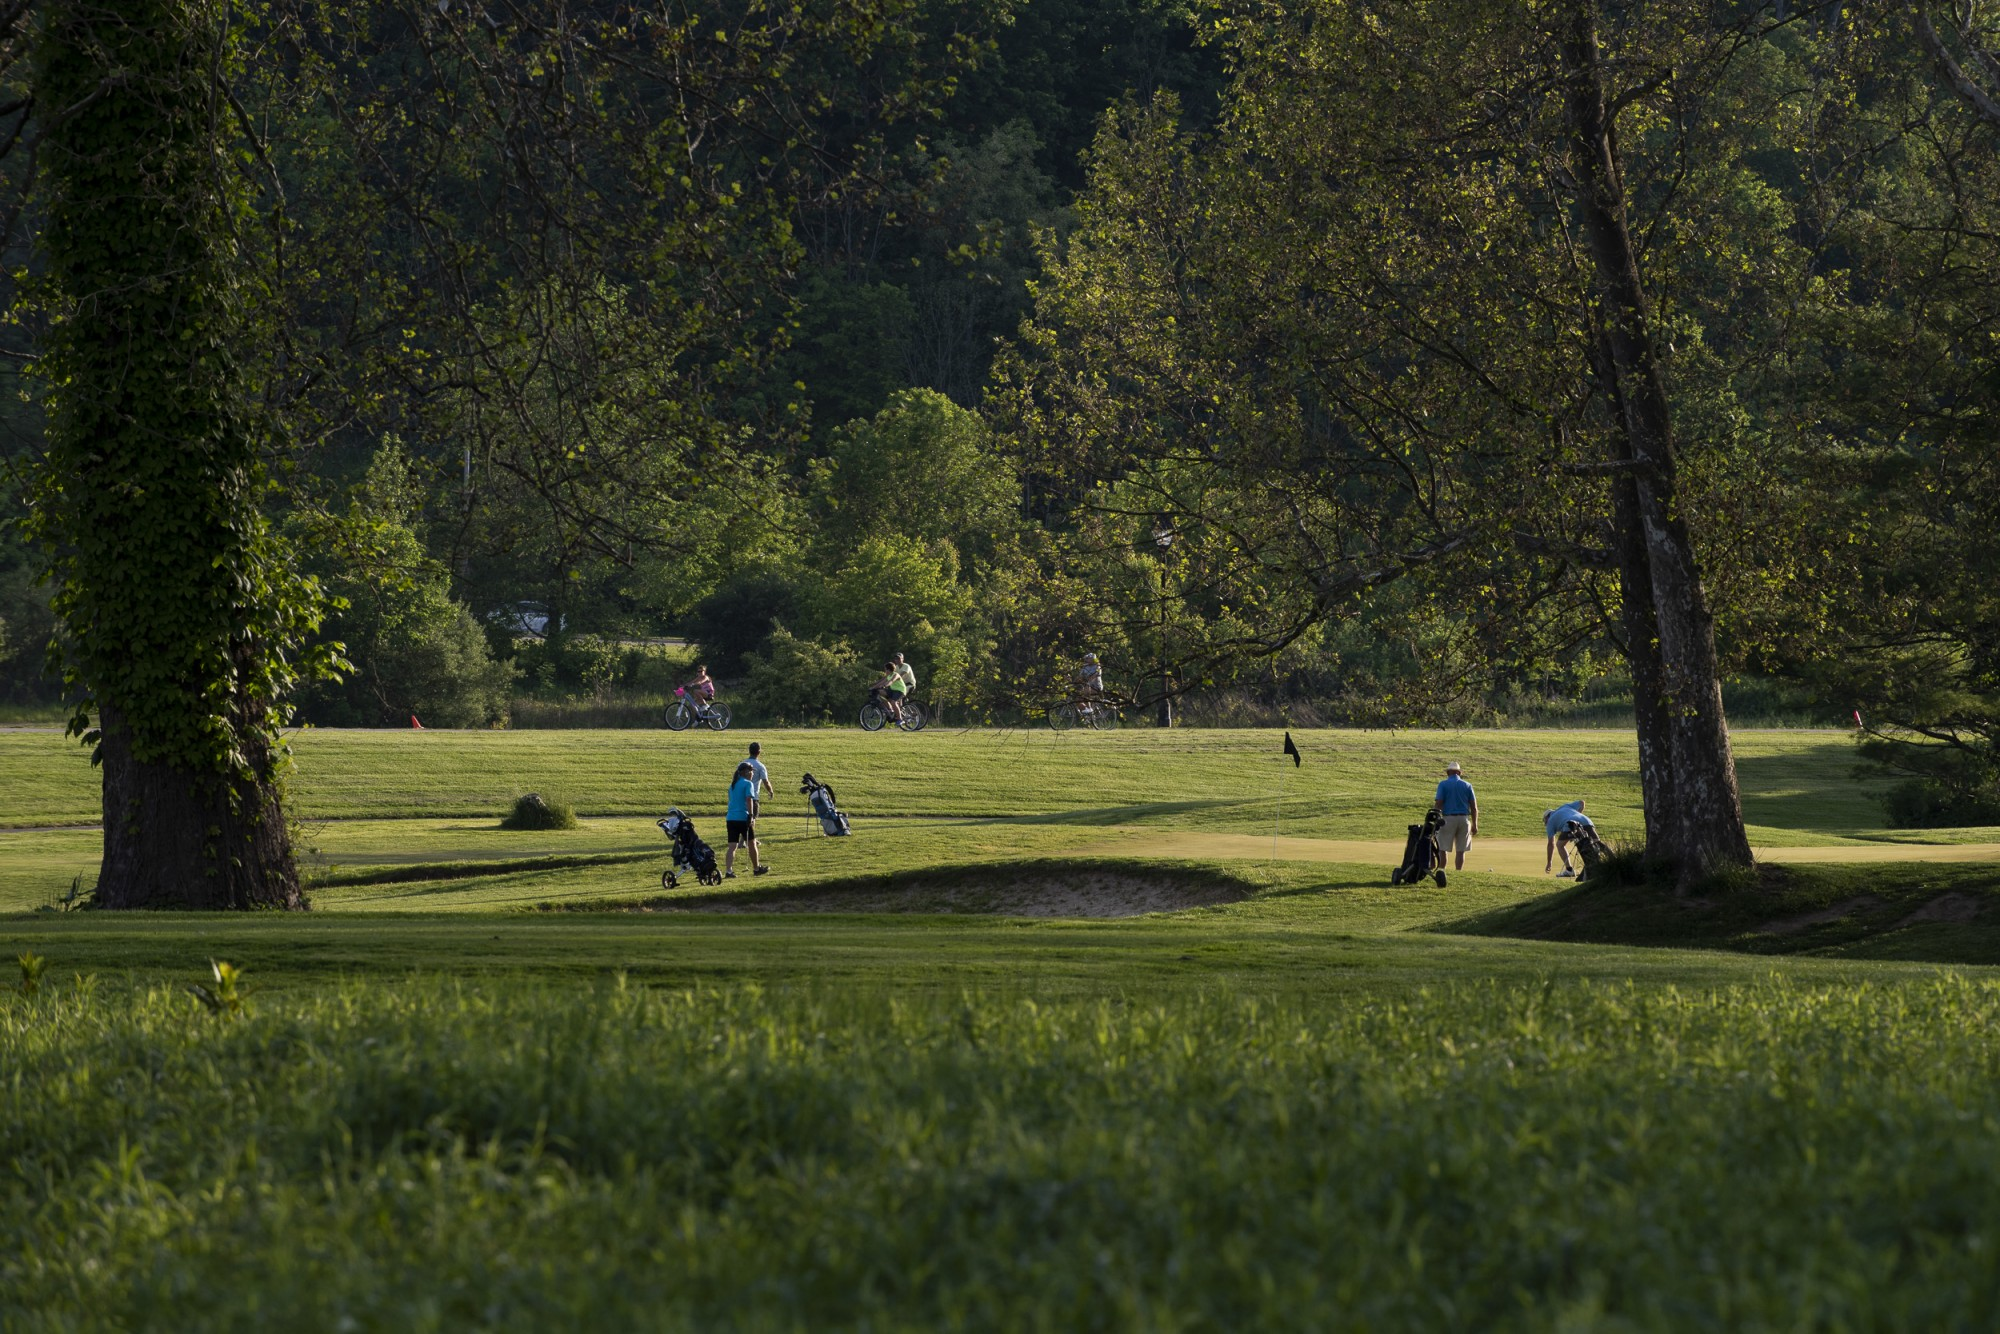 Members of the Athens County Ohio Golf league play on hole seven of the Ohio University golf course on May 19, 2021.